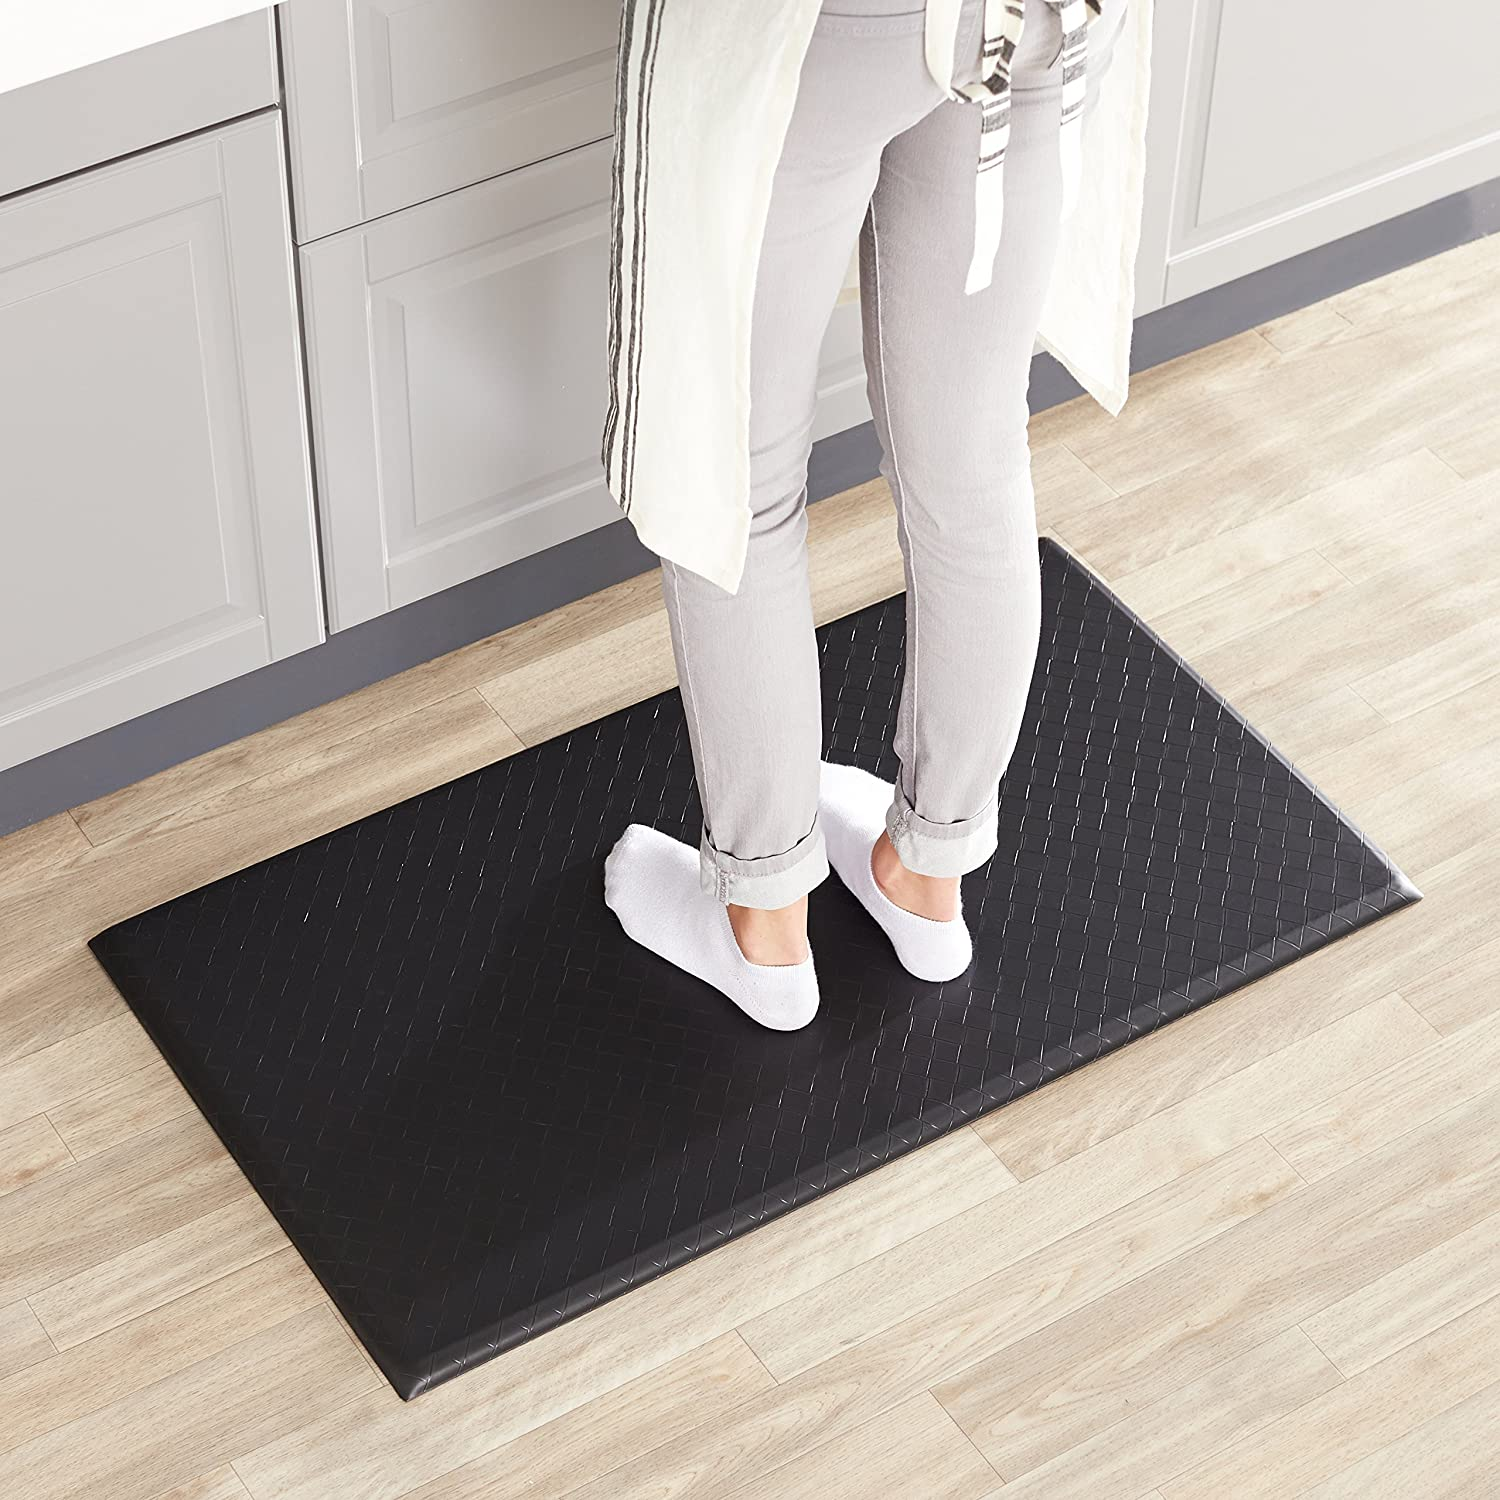 Anti-Fatigue Standing Comfort Mat for Home - 20 x 36 Inch 5